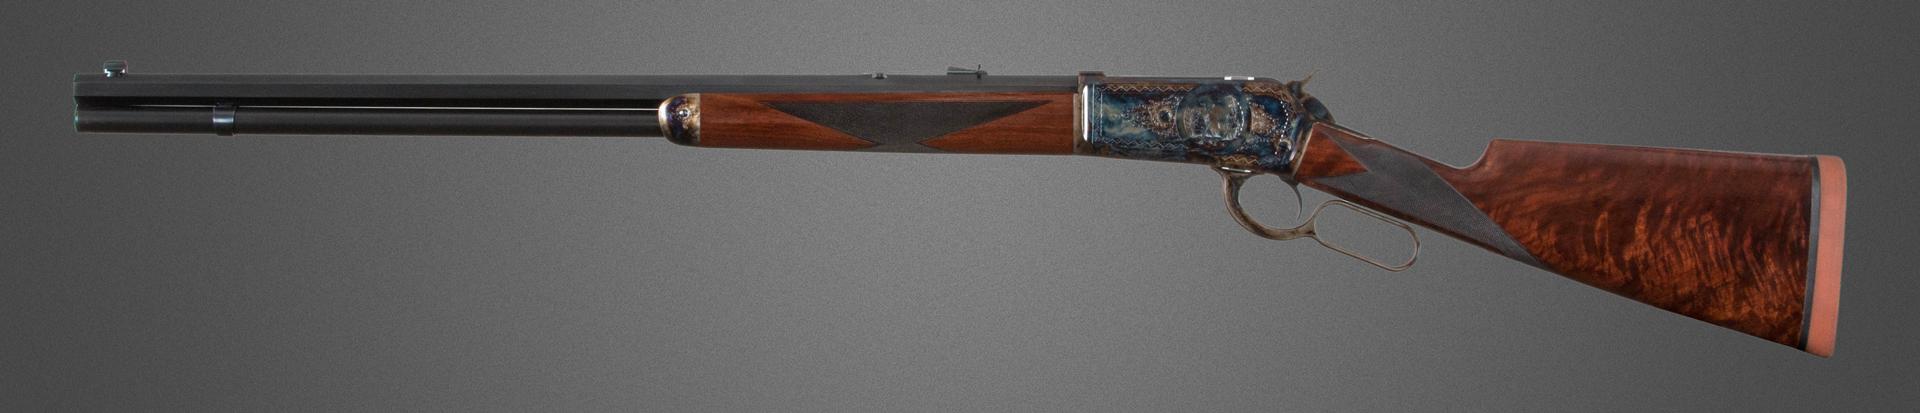 Turnbull Model 1886 lever action rifle as supplied to 2017 WACA Annual Meeting Auction